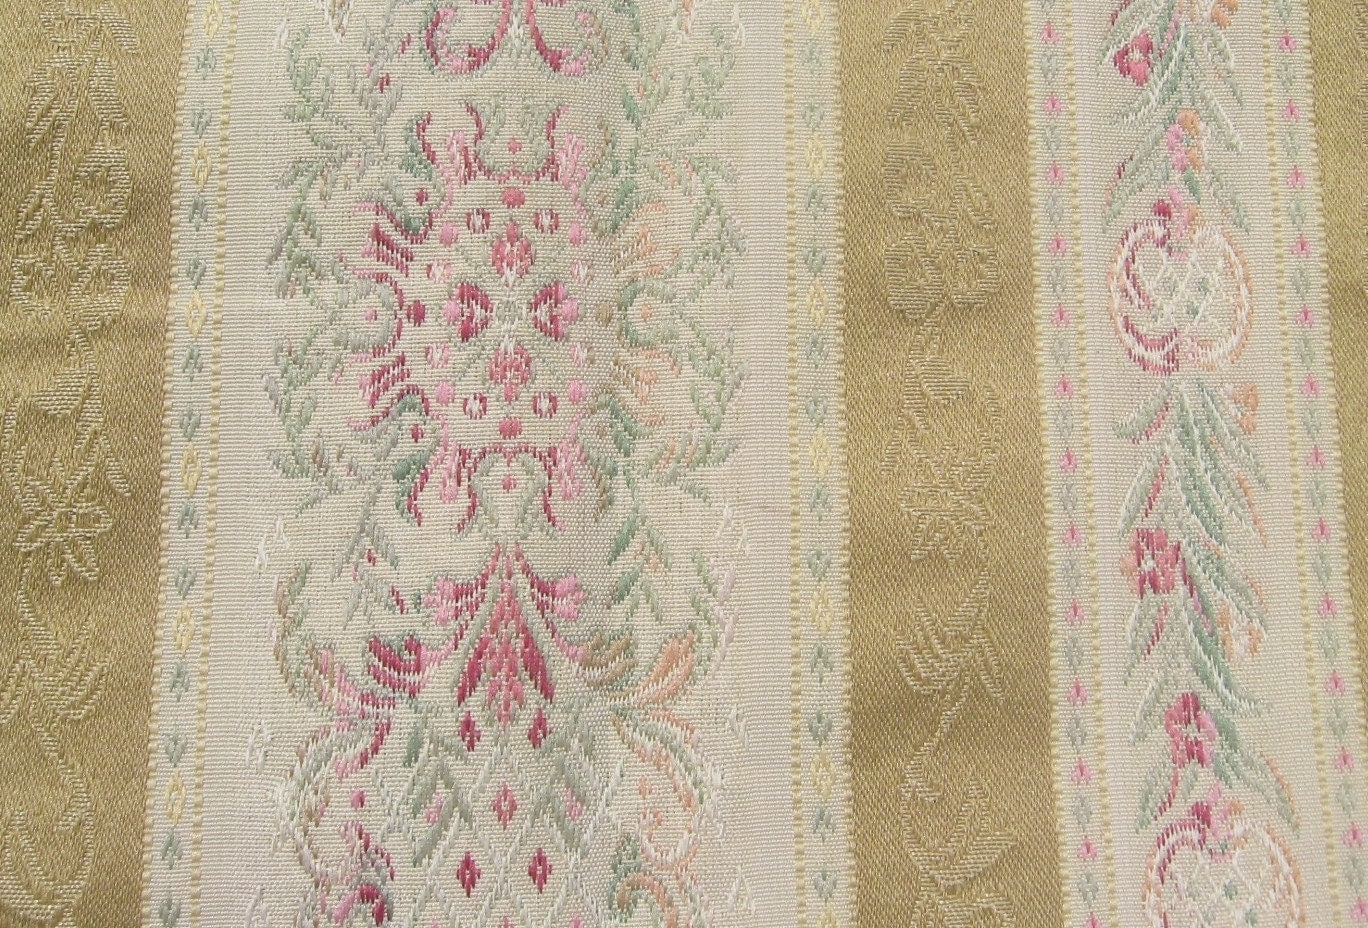 Antique Vintage Brocade Upholstery Fabric 57 Inches By 1 Yard